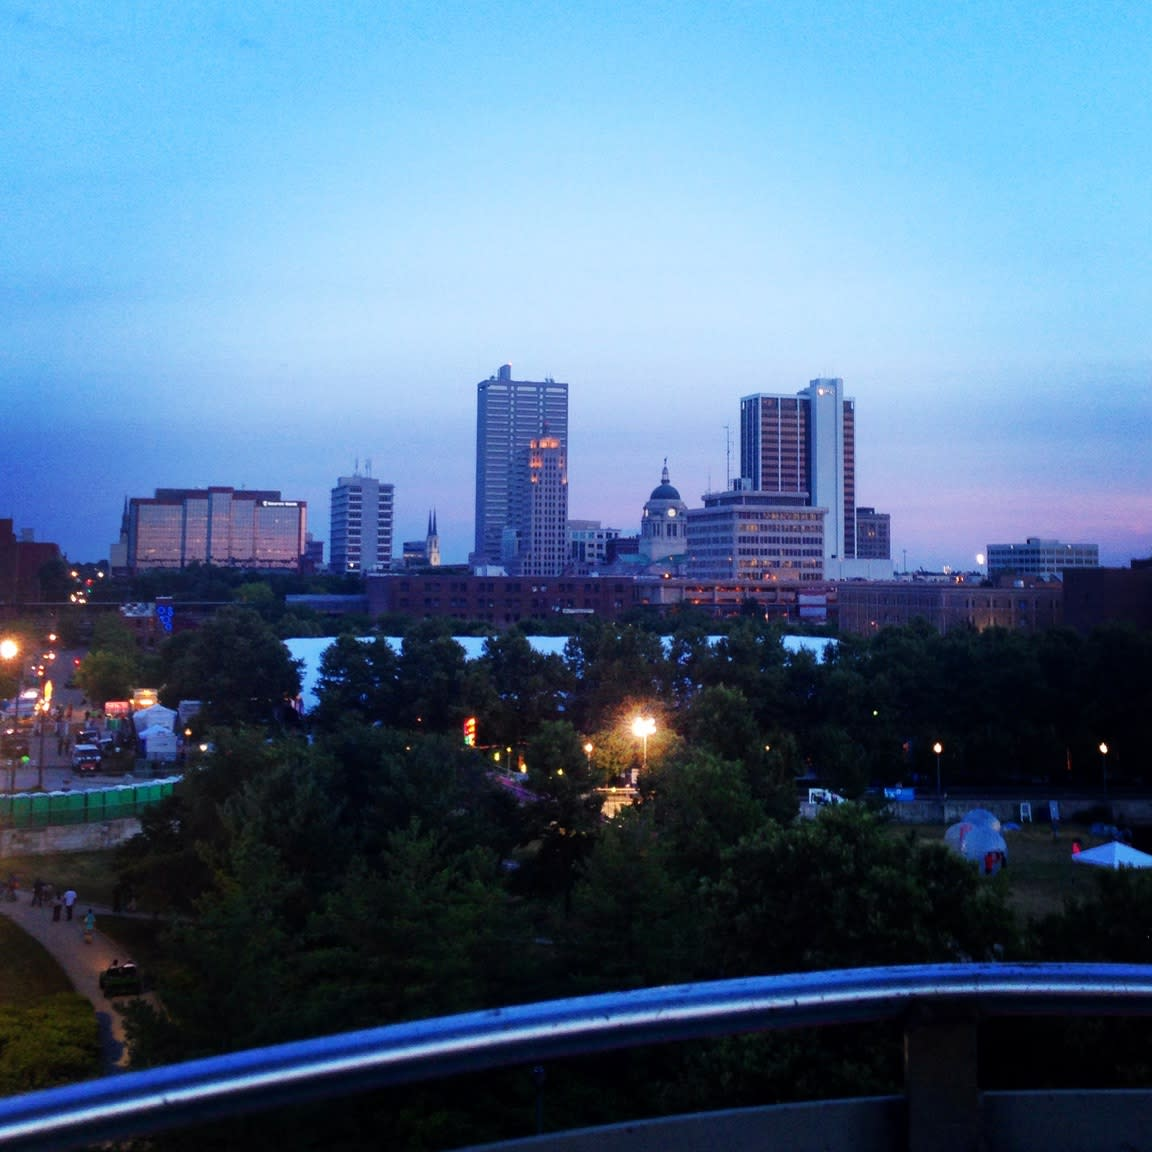 Enjoy a ride on the ferris wheel at Three Rivers Festival, and you'll get a great view of downtown Fort Wayne!